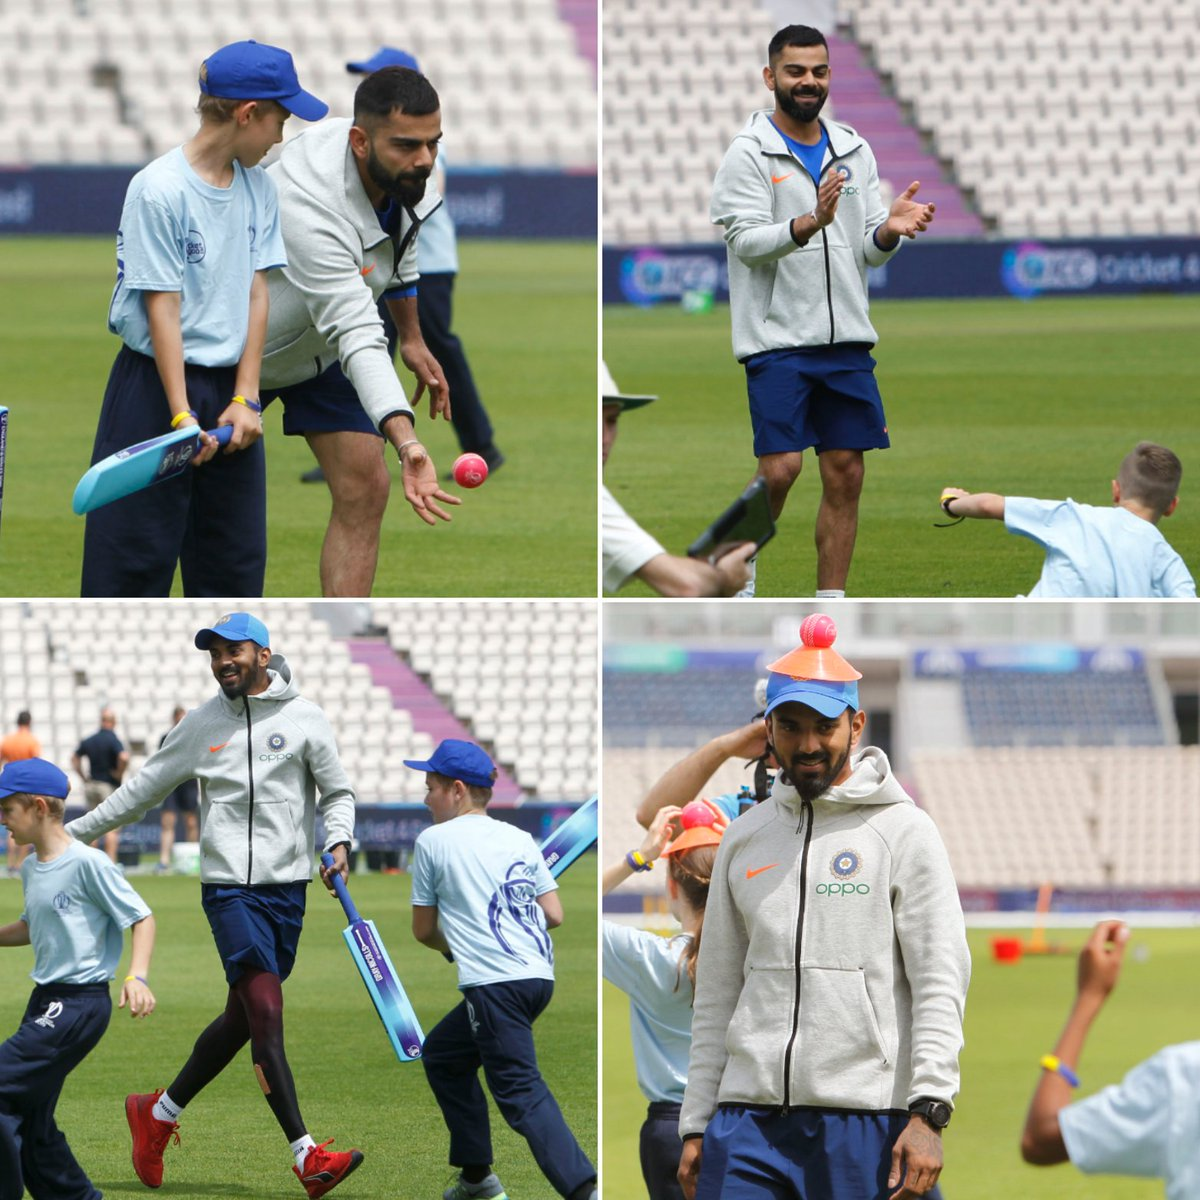 Watch: An initiative by the ICC - Members of #TeamIndia did their bit to bring some smiles on the faces of kids by playing cricket with them. This one is courtesy @imVkohli  @klrahul11 🙂😊#CWC19 Watch the video here 📽️📽️📽️ https://bit.ly/2Xt7lho